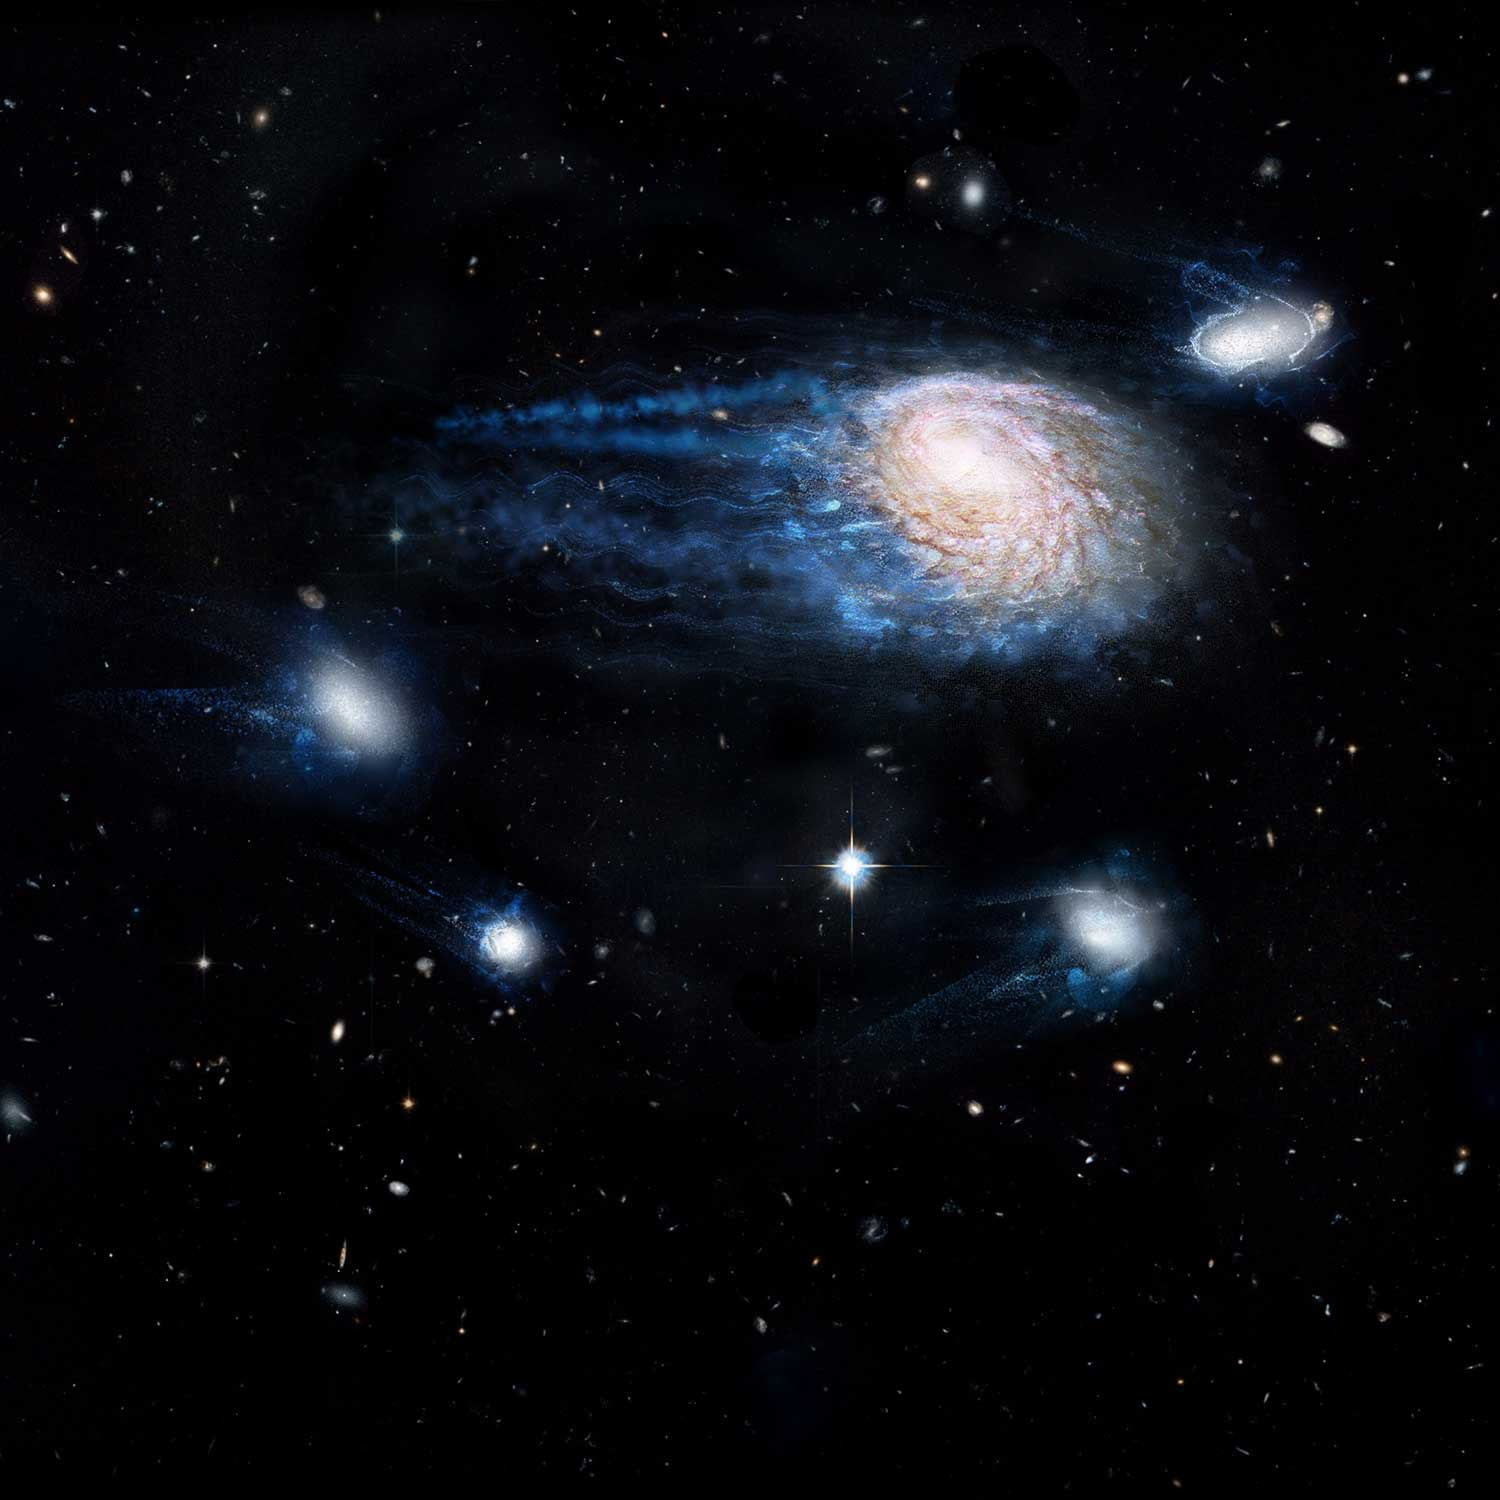 Large galaxies strip star-forming gases from their small satellite galaxies